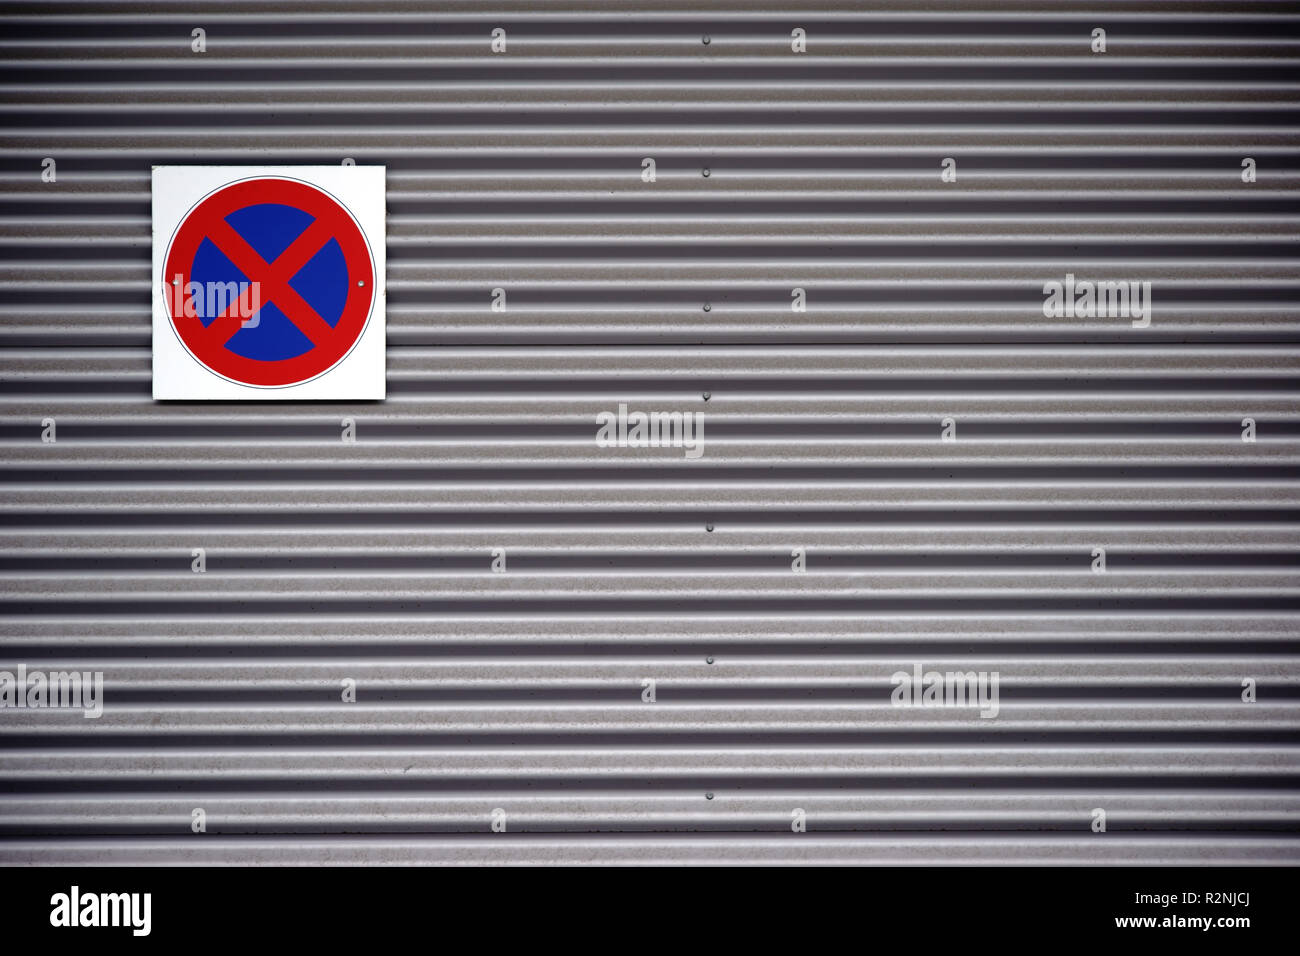 A no-stop sign screwed to a corrugated iron facade, - Stock Image